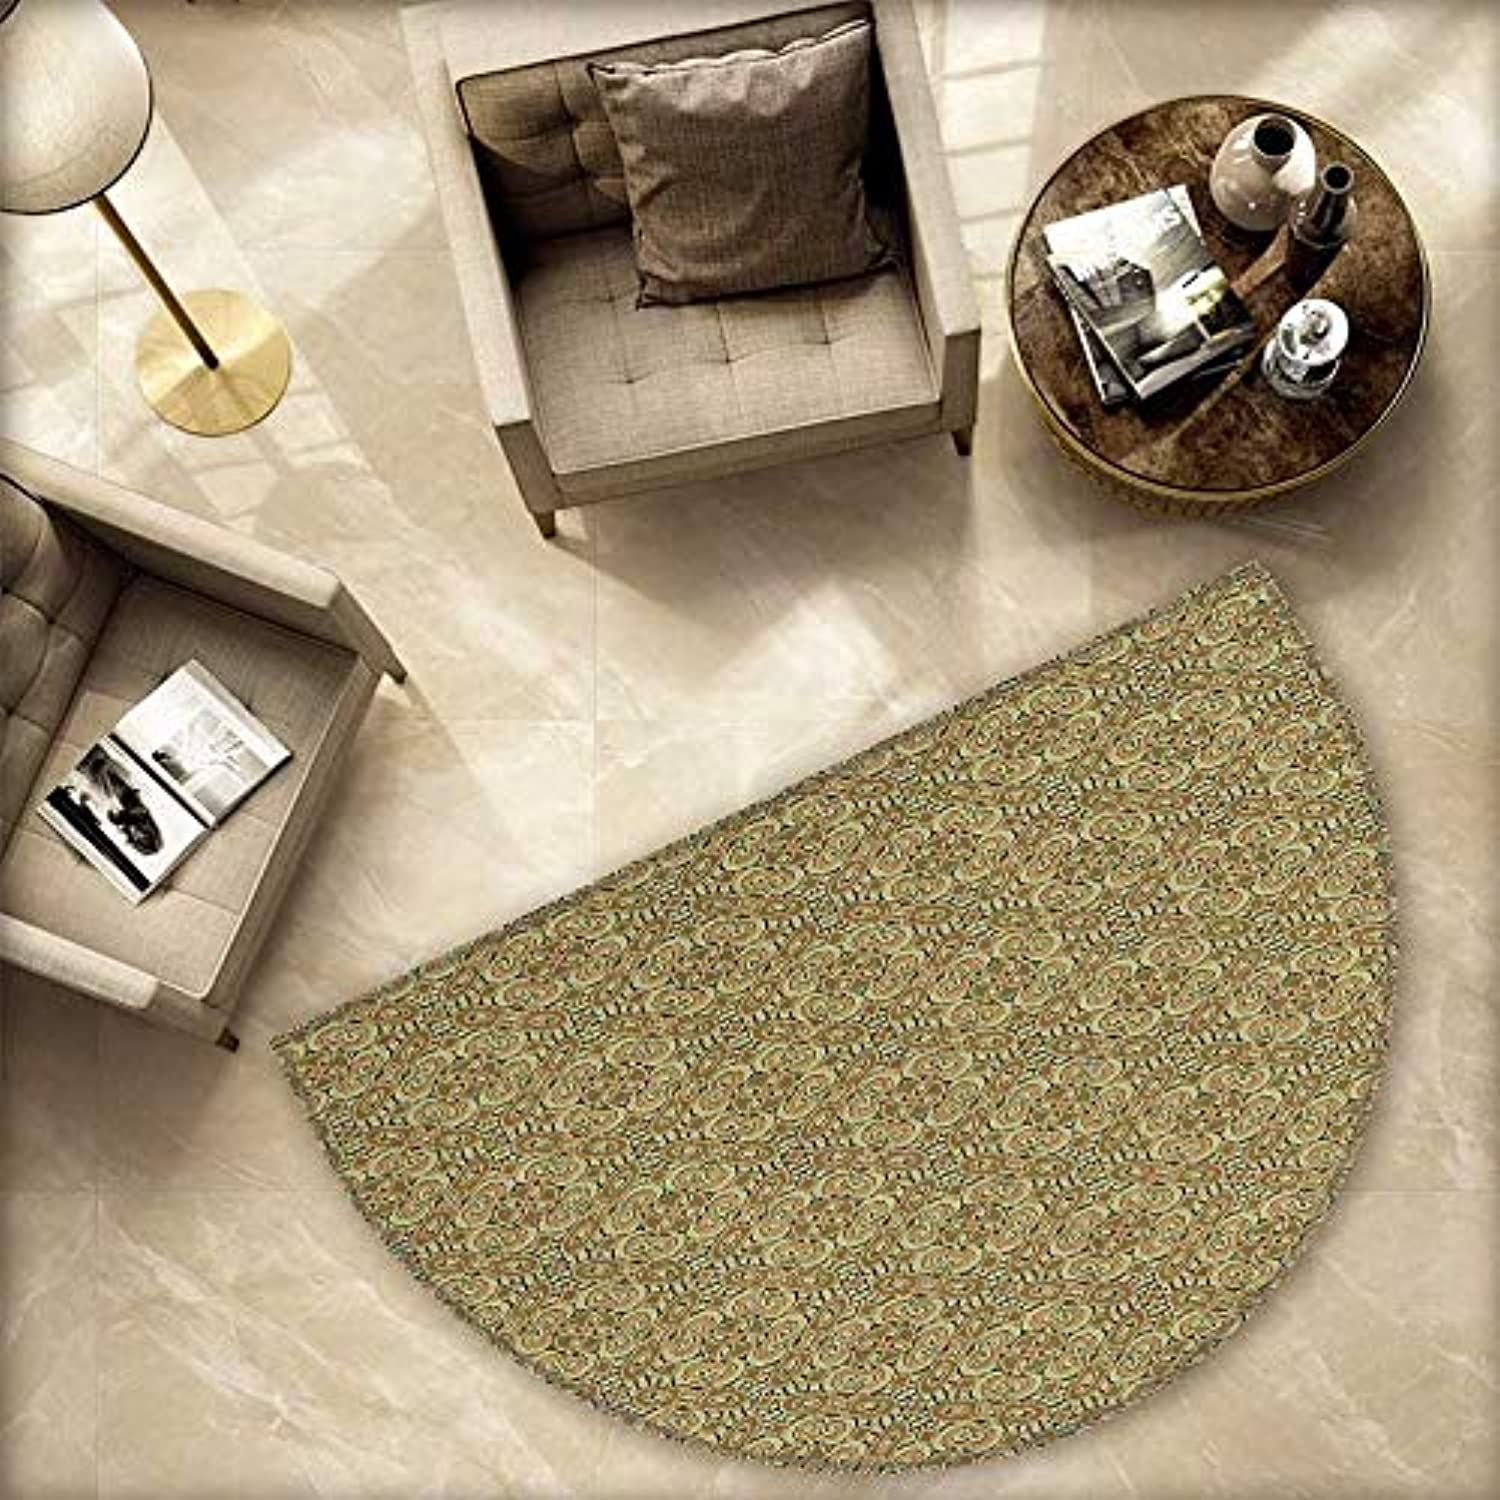 Traditional Semicircle Doormat Abstract Curly Green Ornament Arabesque Old Fashioned Ethnic Halfmoon doormats H 78.7  xD 118.1  Dark Green Pale Brown Yellow